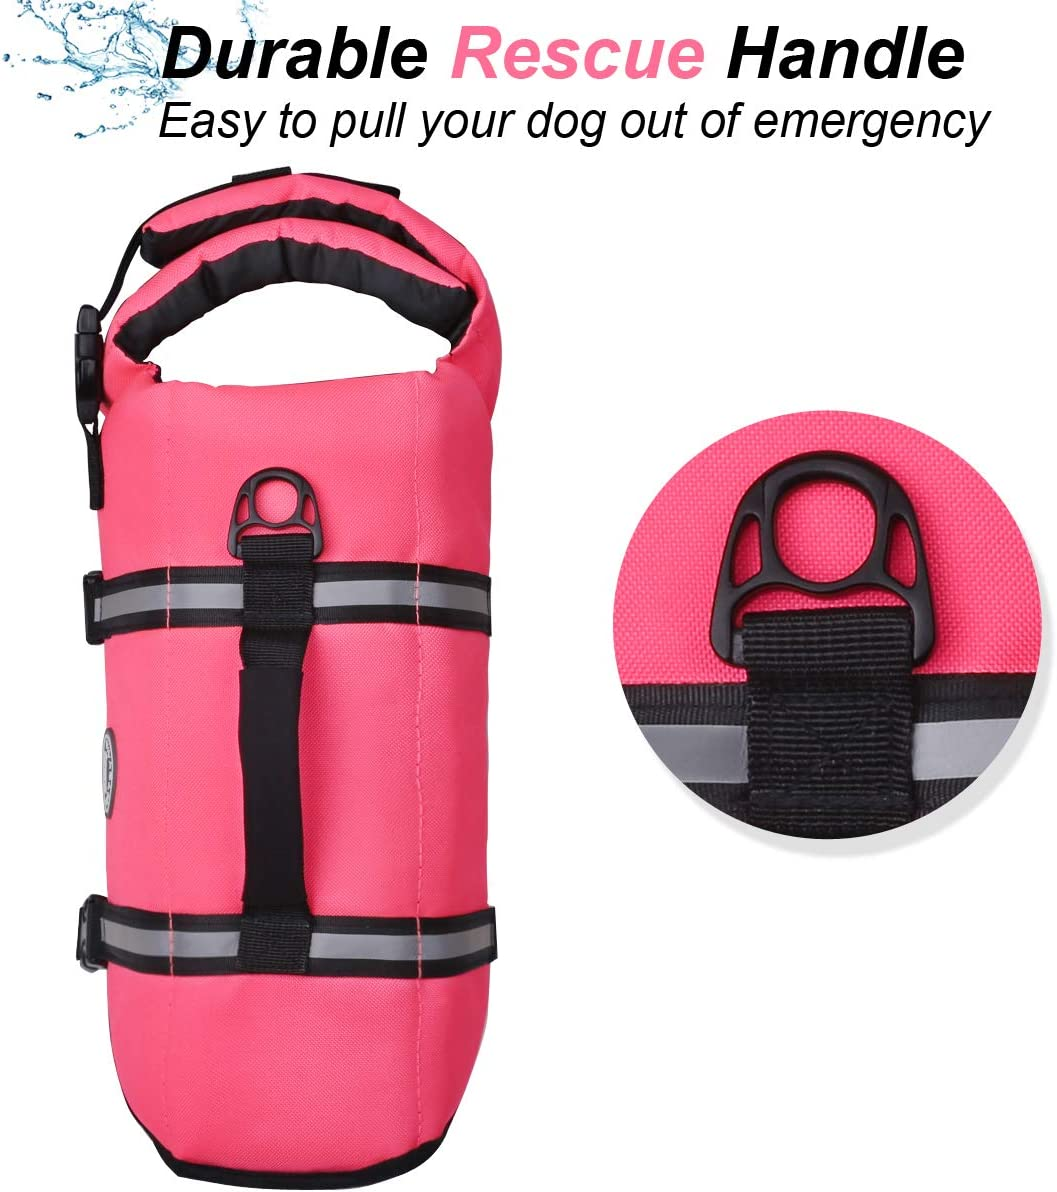 Vivaglory Ripstop Dog Life Jackets Reflective /& Adjustable Preserver Vest with Enhanced Buoyancy /& Rescue Handle for Swimming Boating /& Canoeing